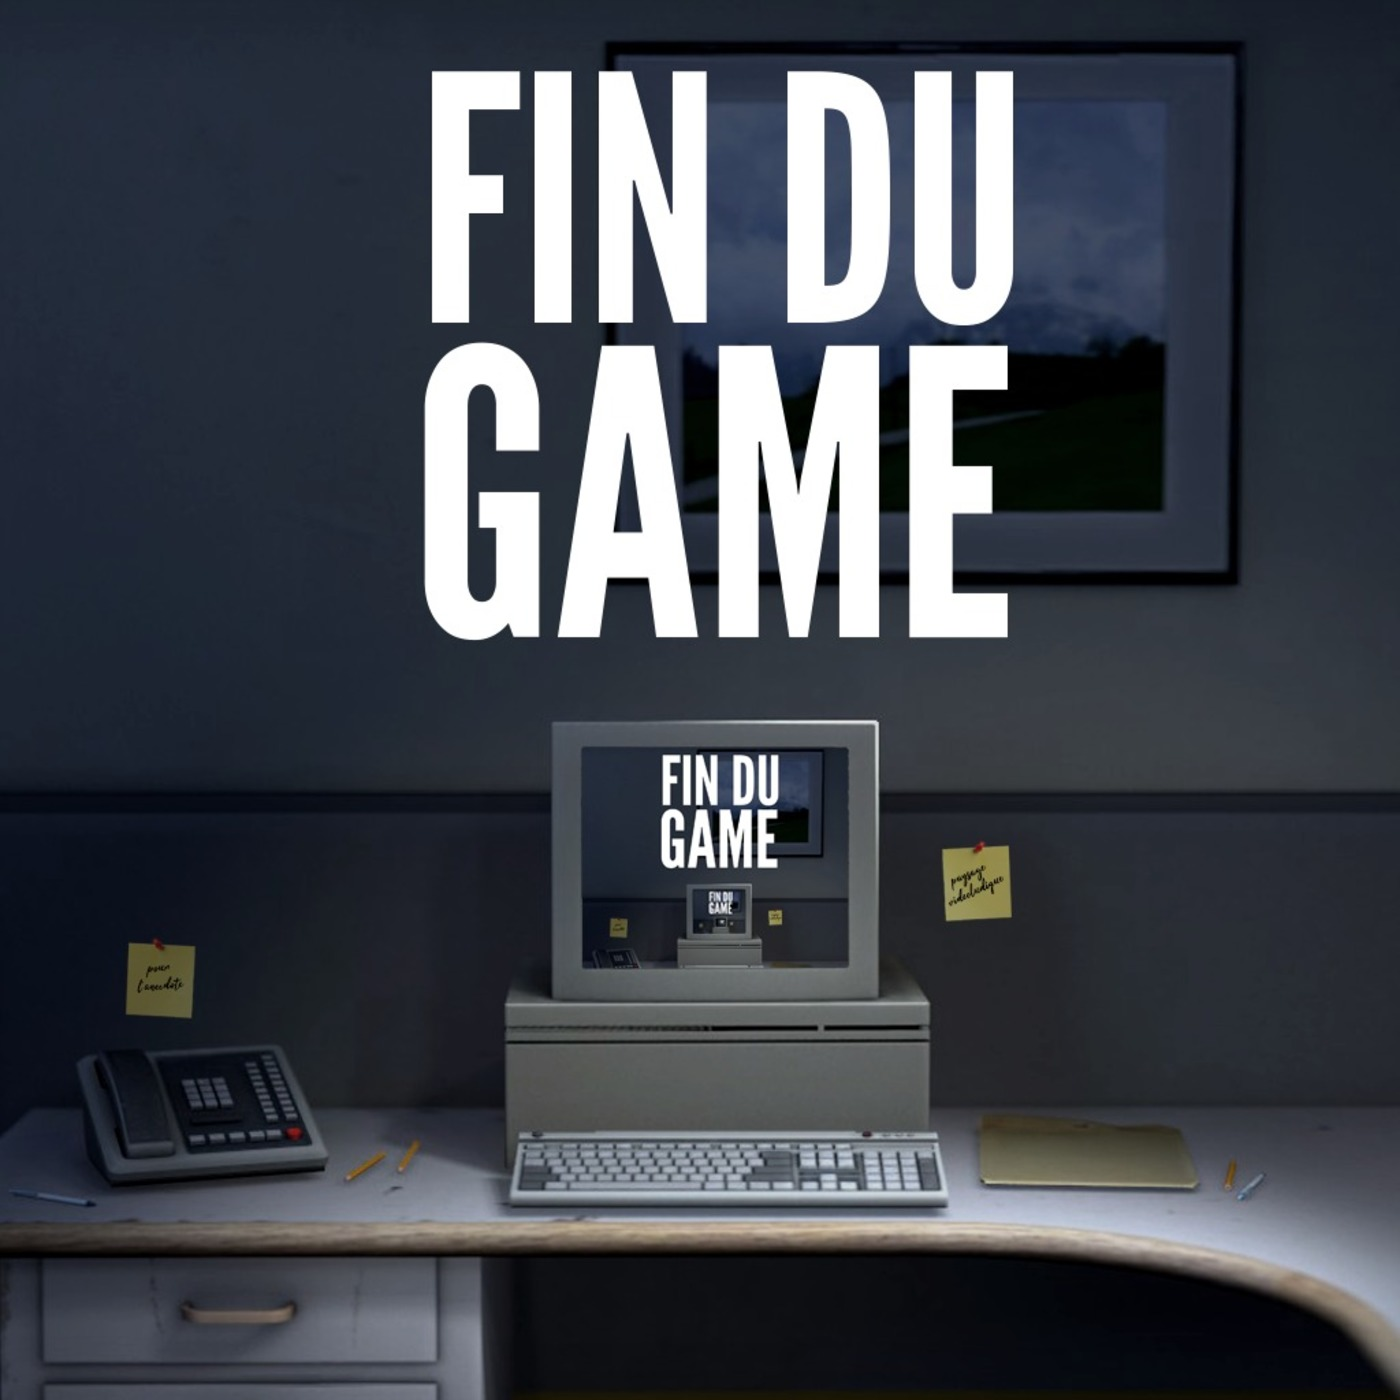 Episode 37 - The Stanley Parable